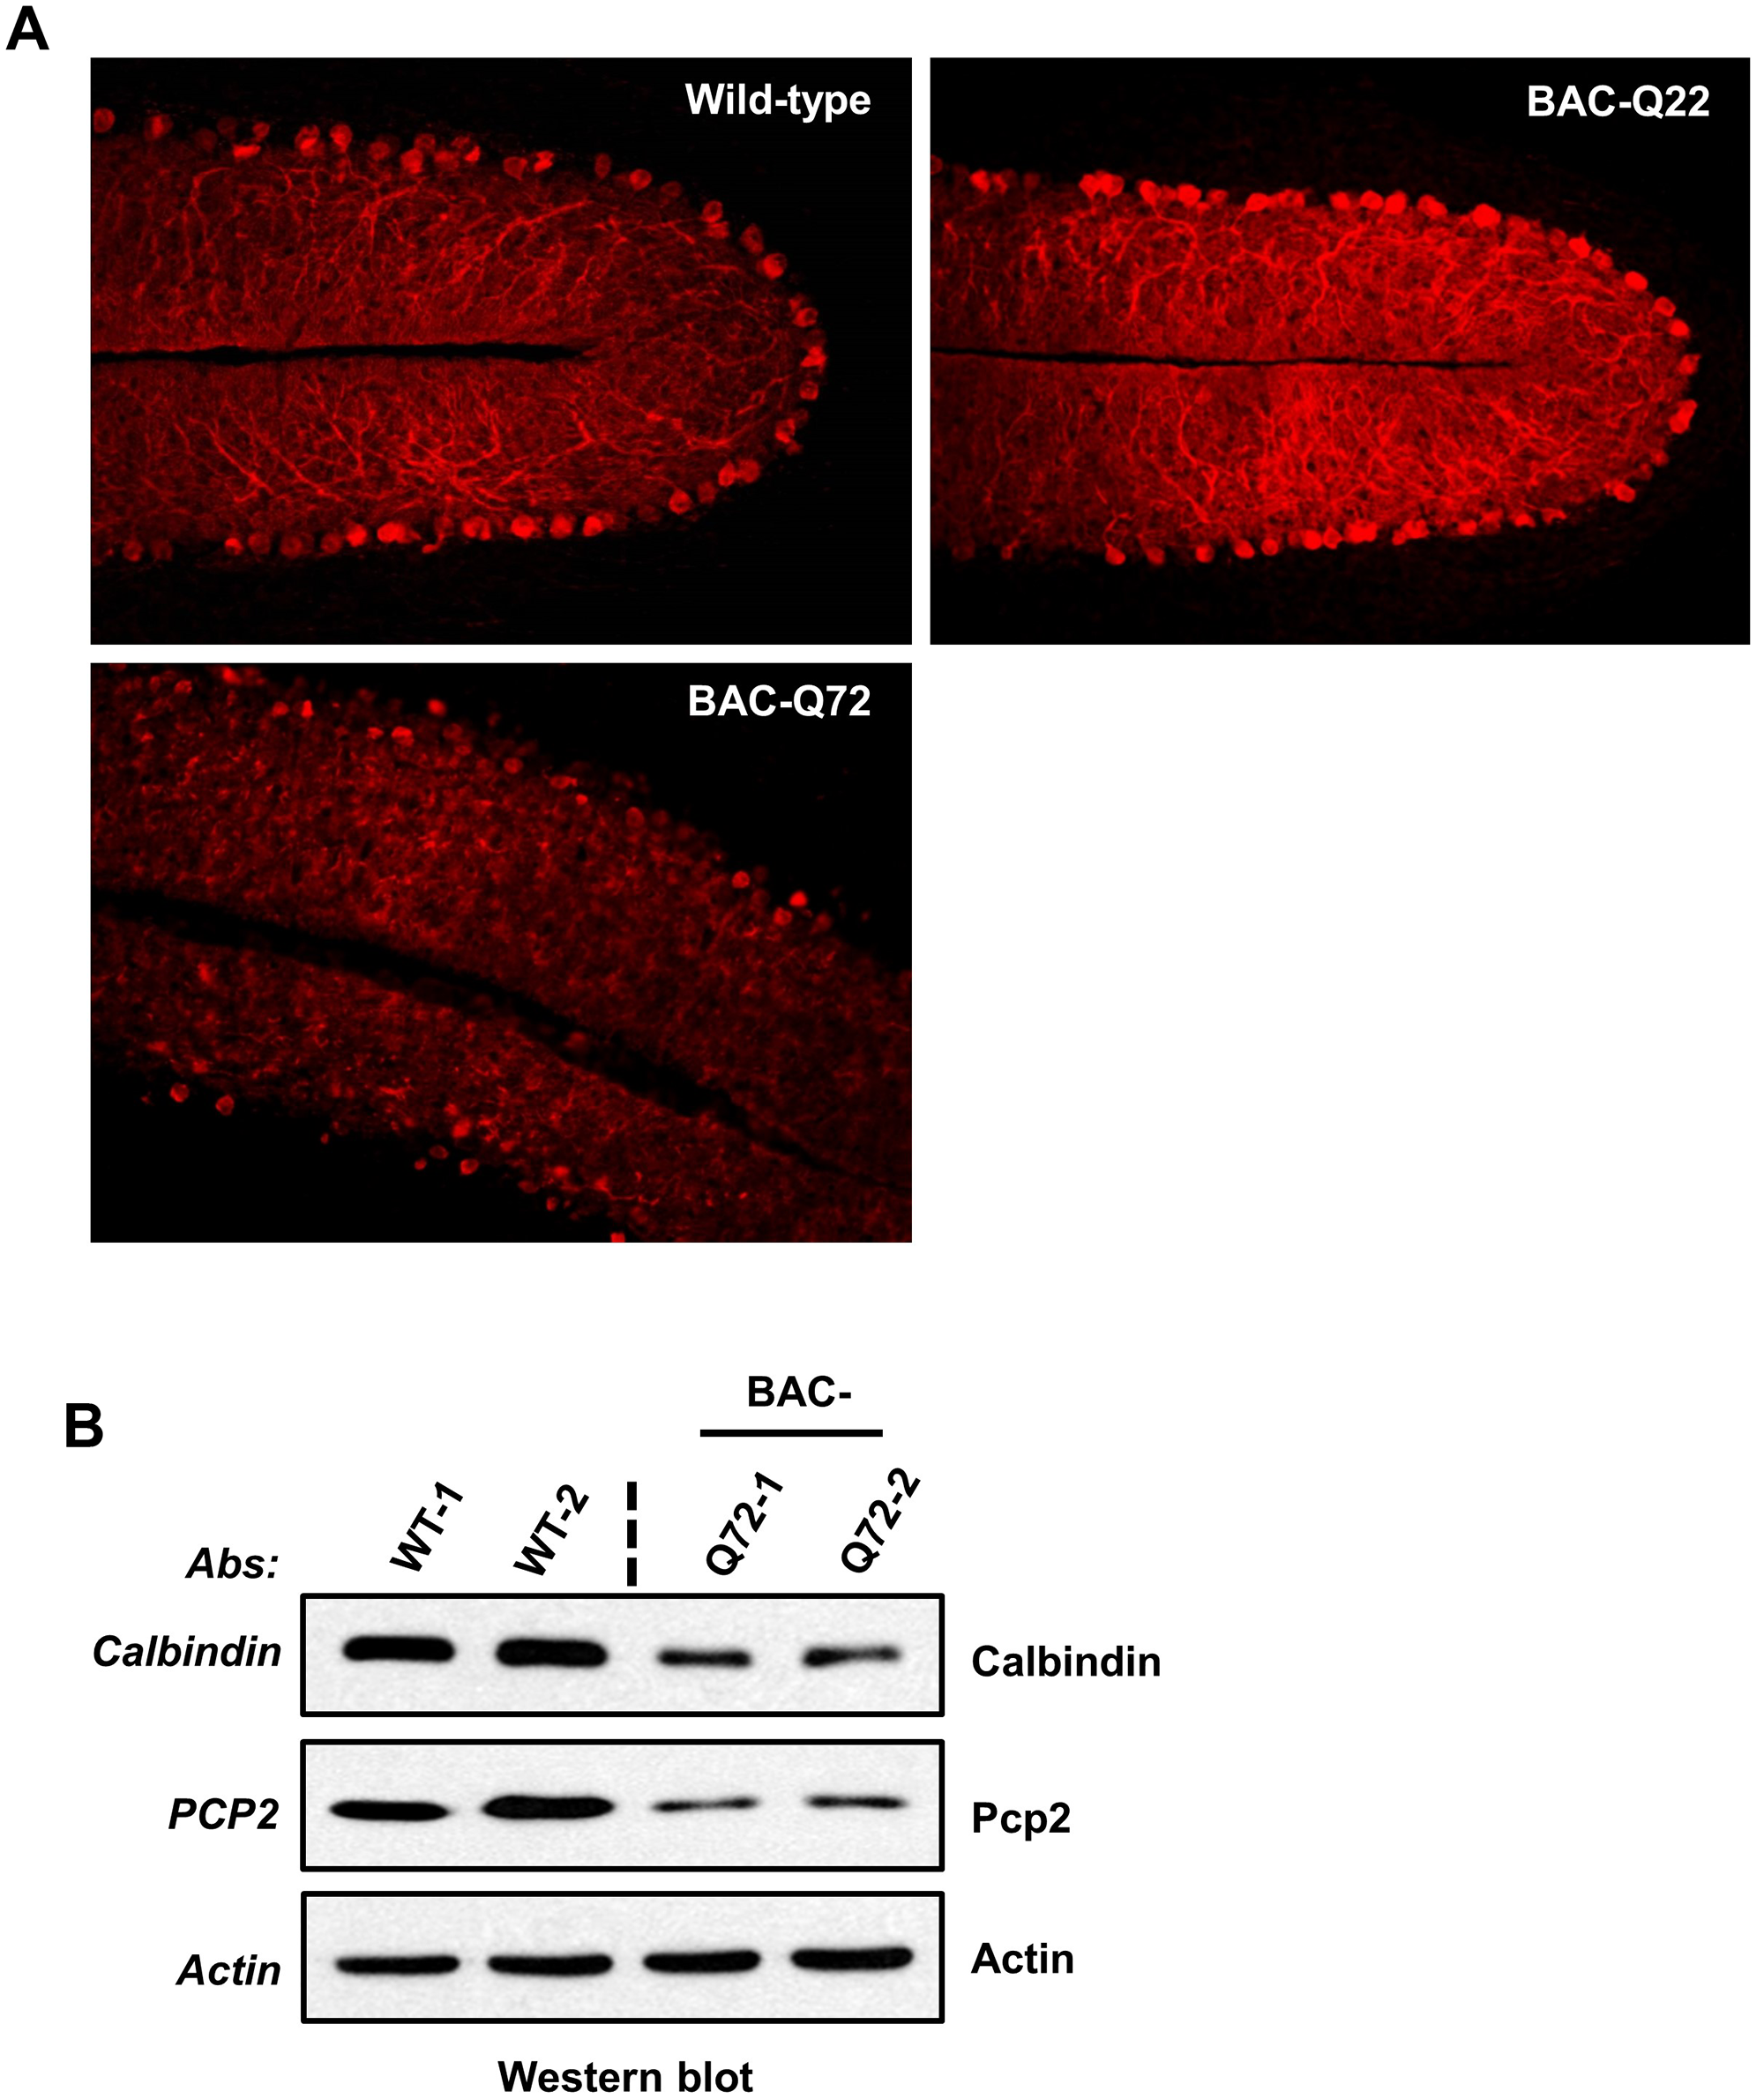 PC morphology in BAC-Q22 and BAC-Q72 mice.